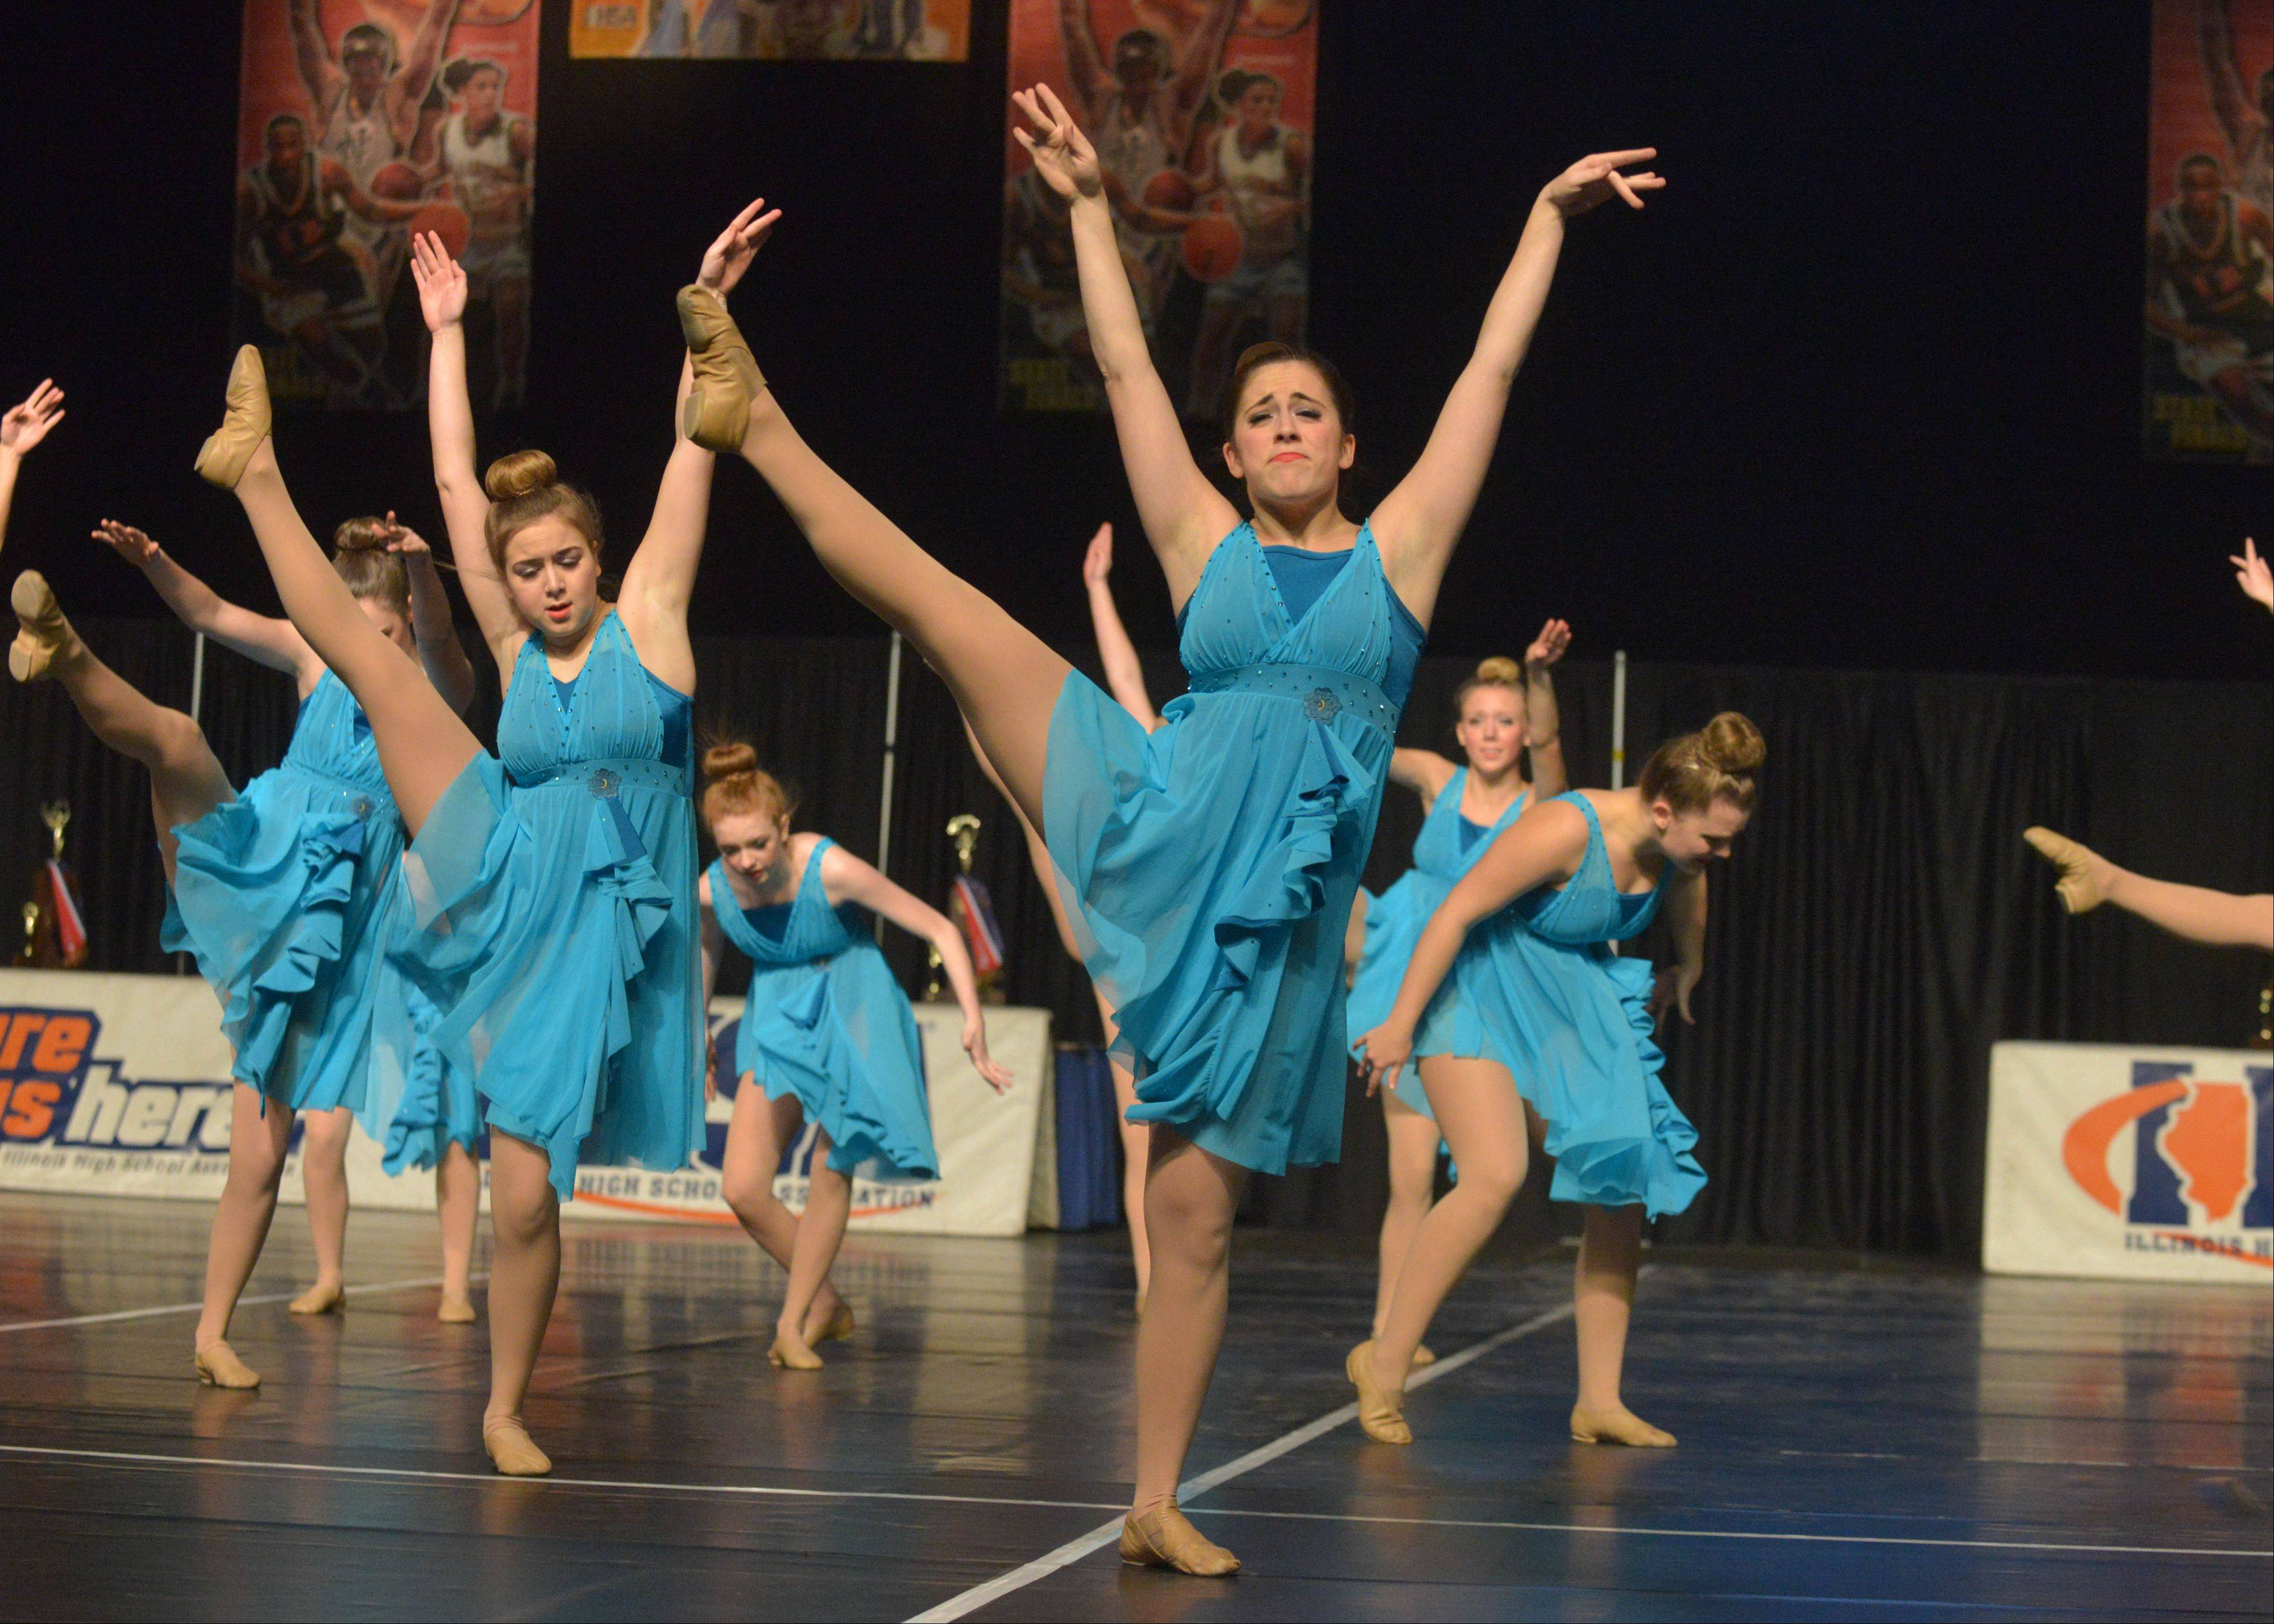 Part of the performance by St. Francis High School in Wheaton that earned the team a spot in Saturday's finals.